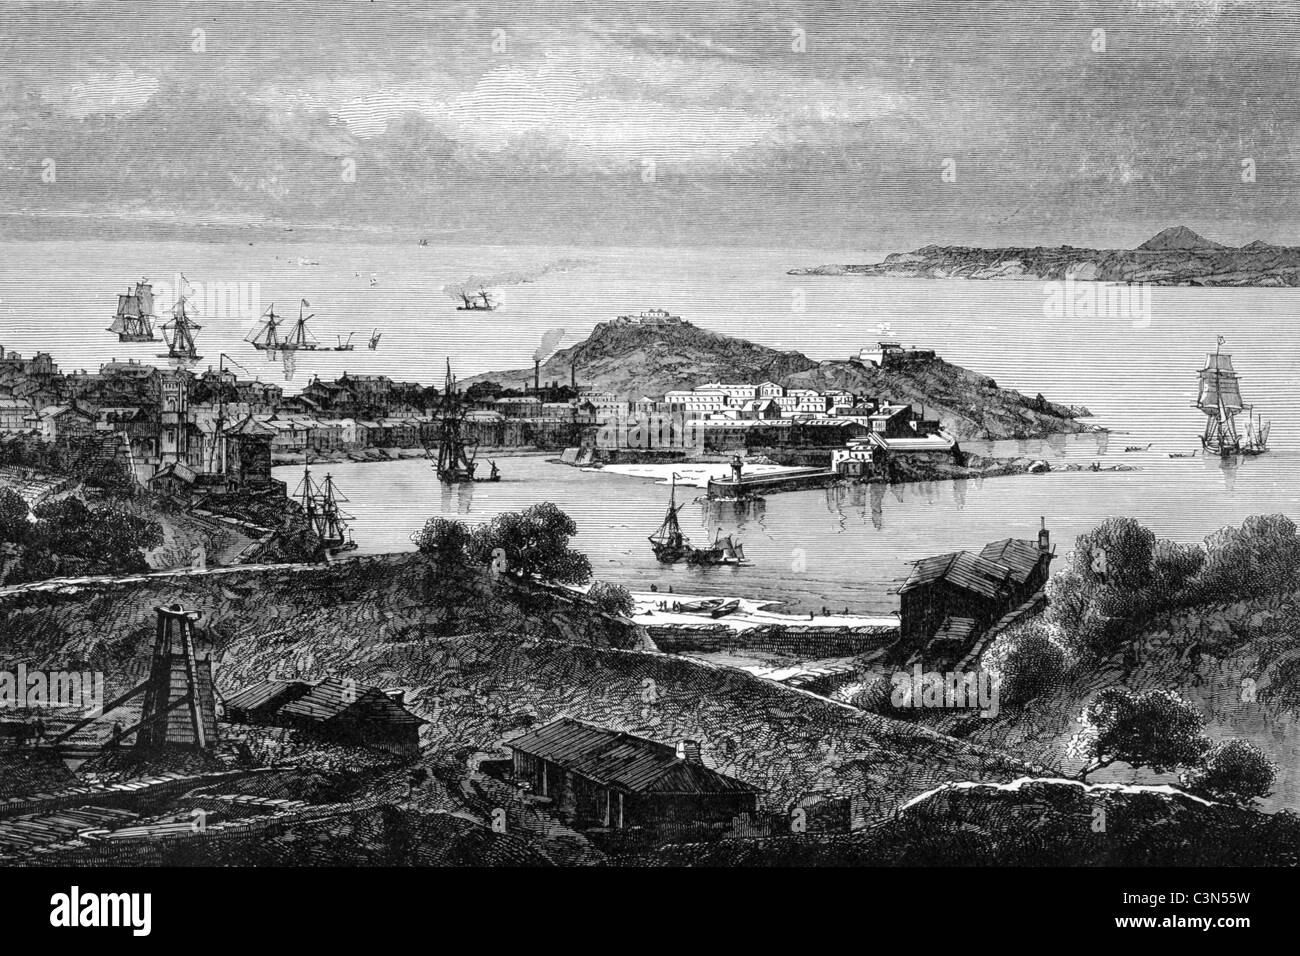 Saint Ives Yorkshire England on engraving from 1888. - Stock Image